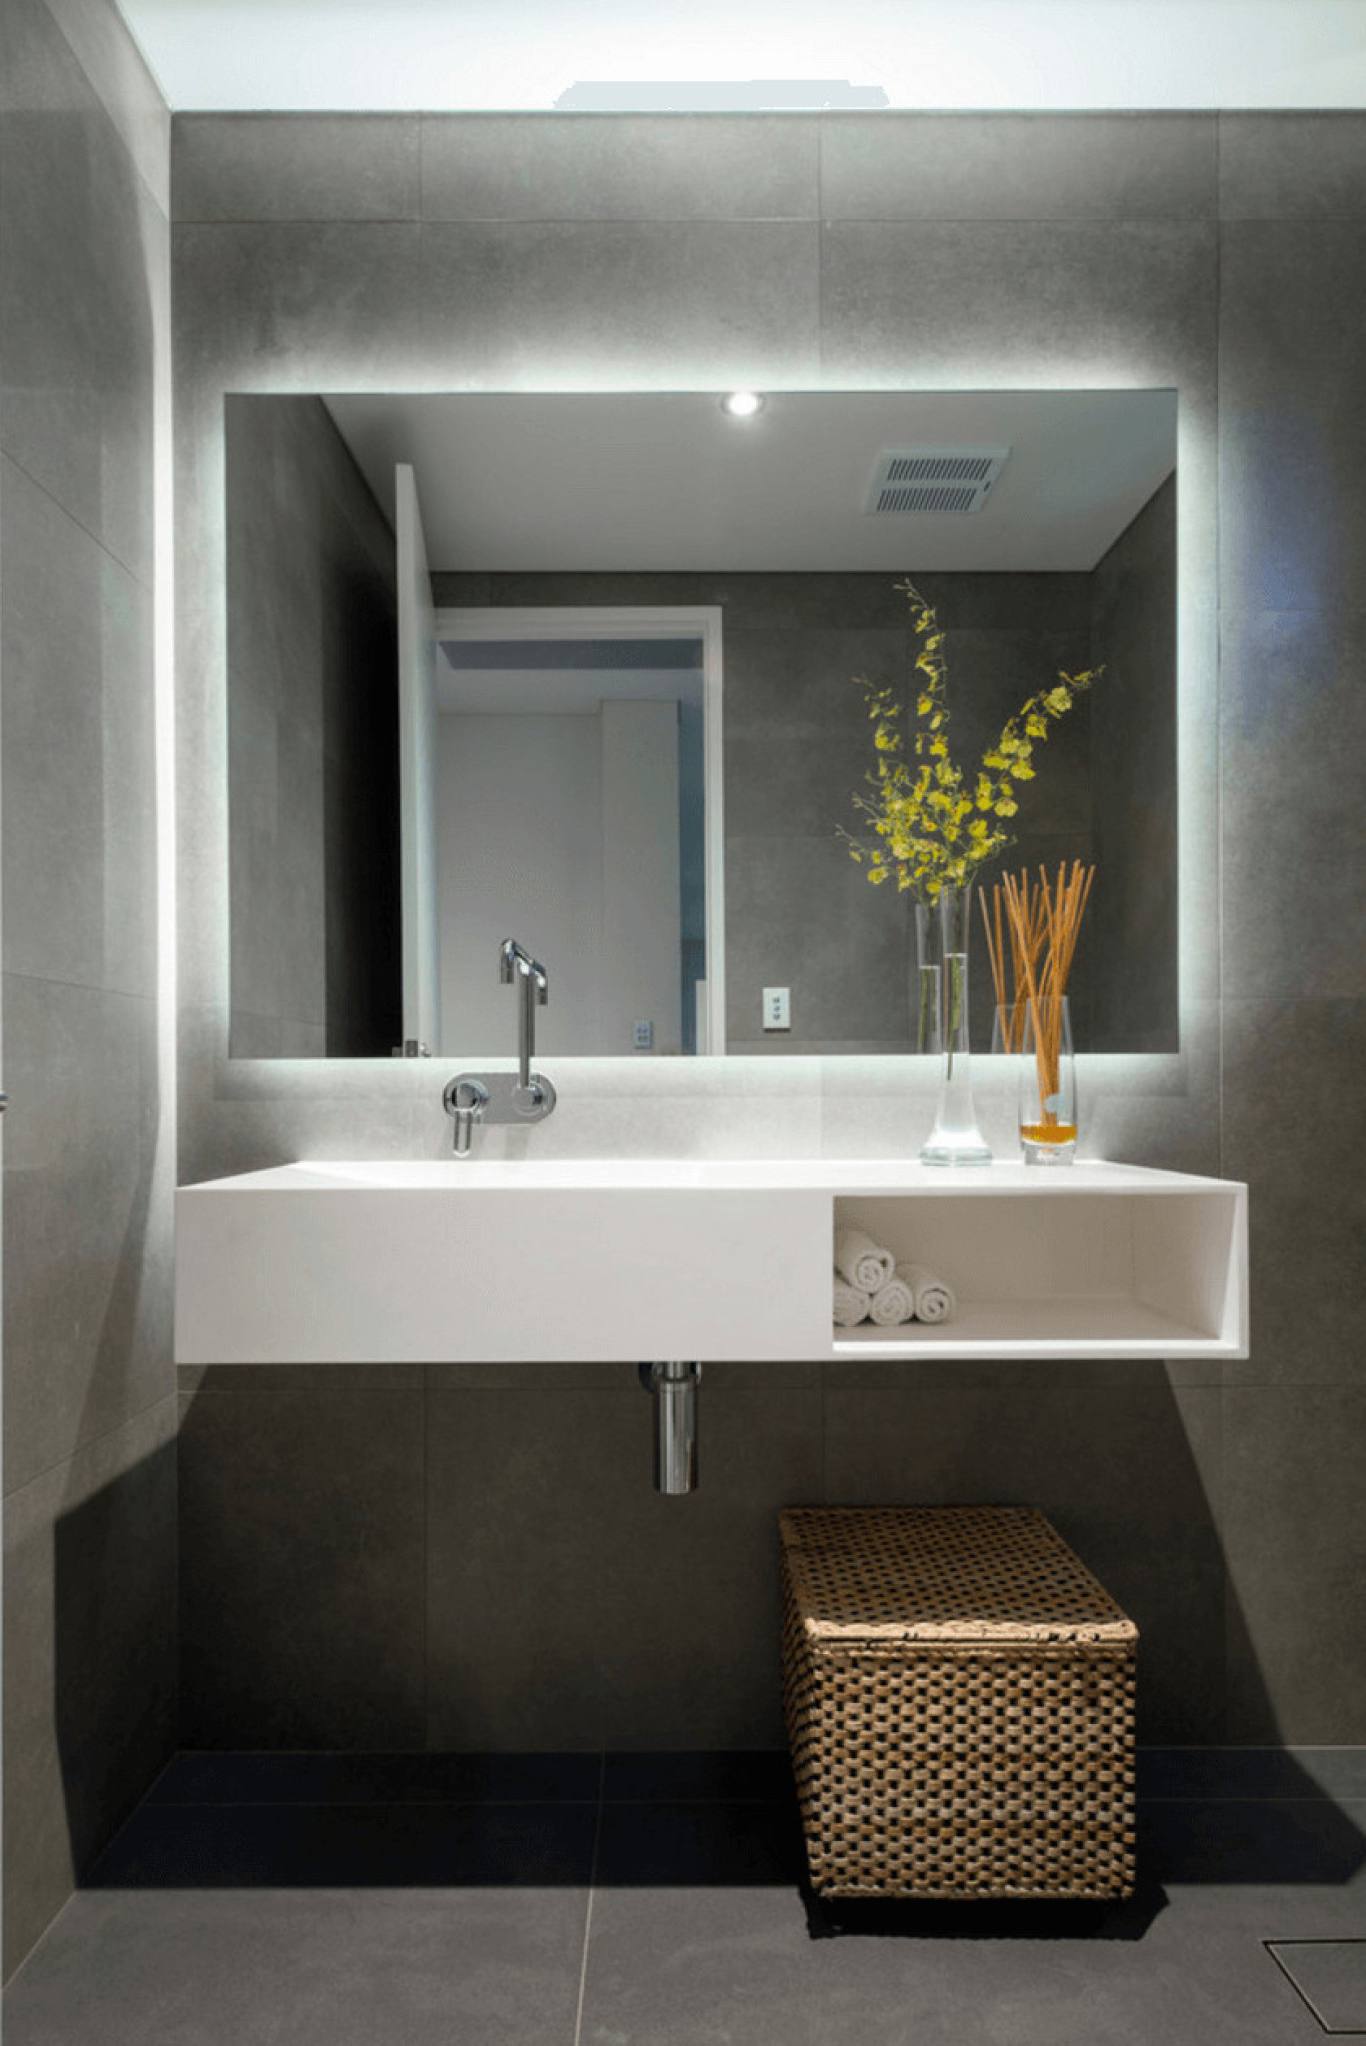 Ansprechend Large Wall Mirrors Nz Square For Full La Intended For Current Small Bathroom Wall Mirrors (Gallery 16 of 20)